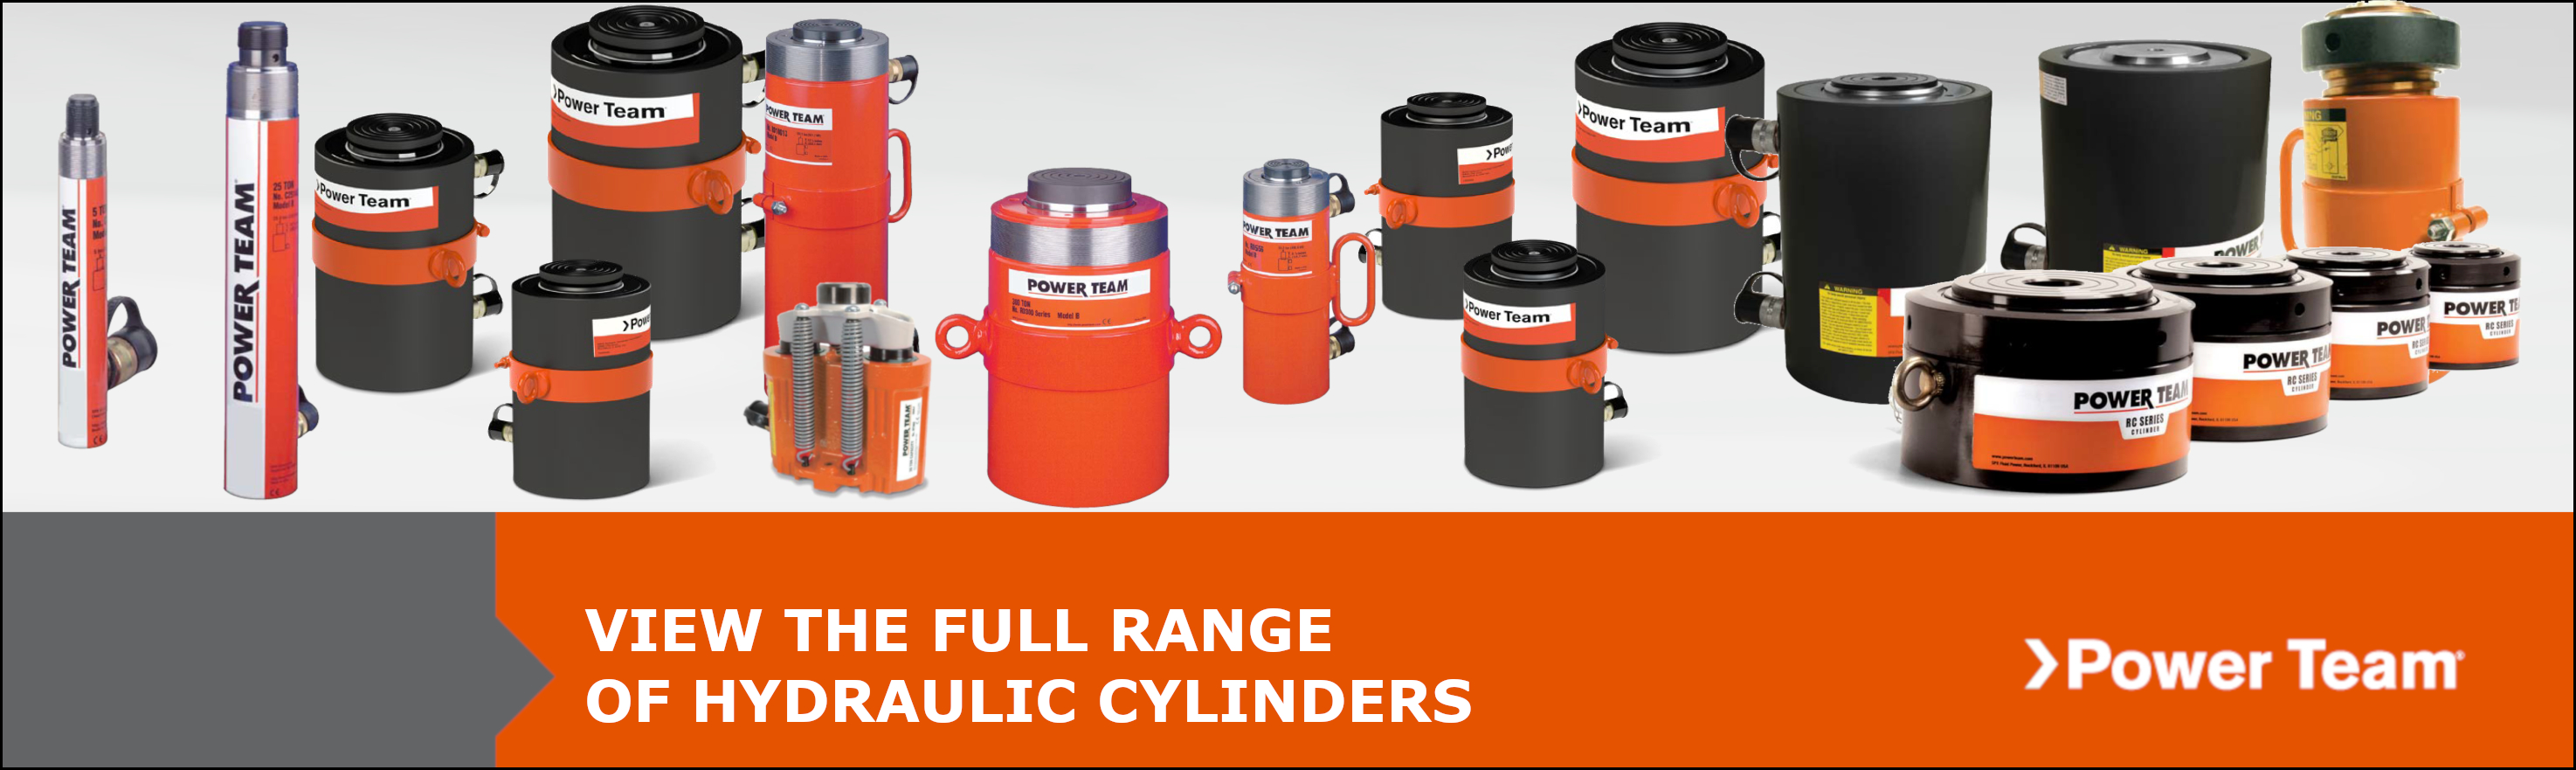 Full Range Power Team Cylinders